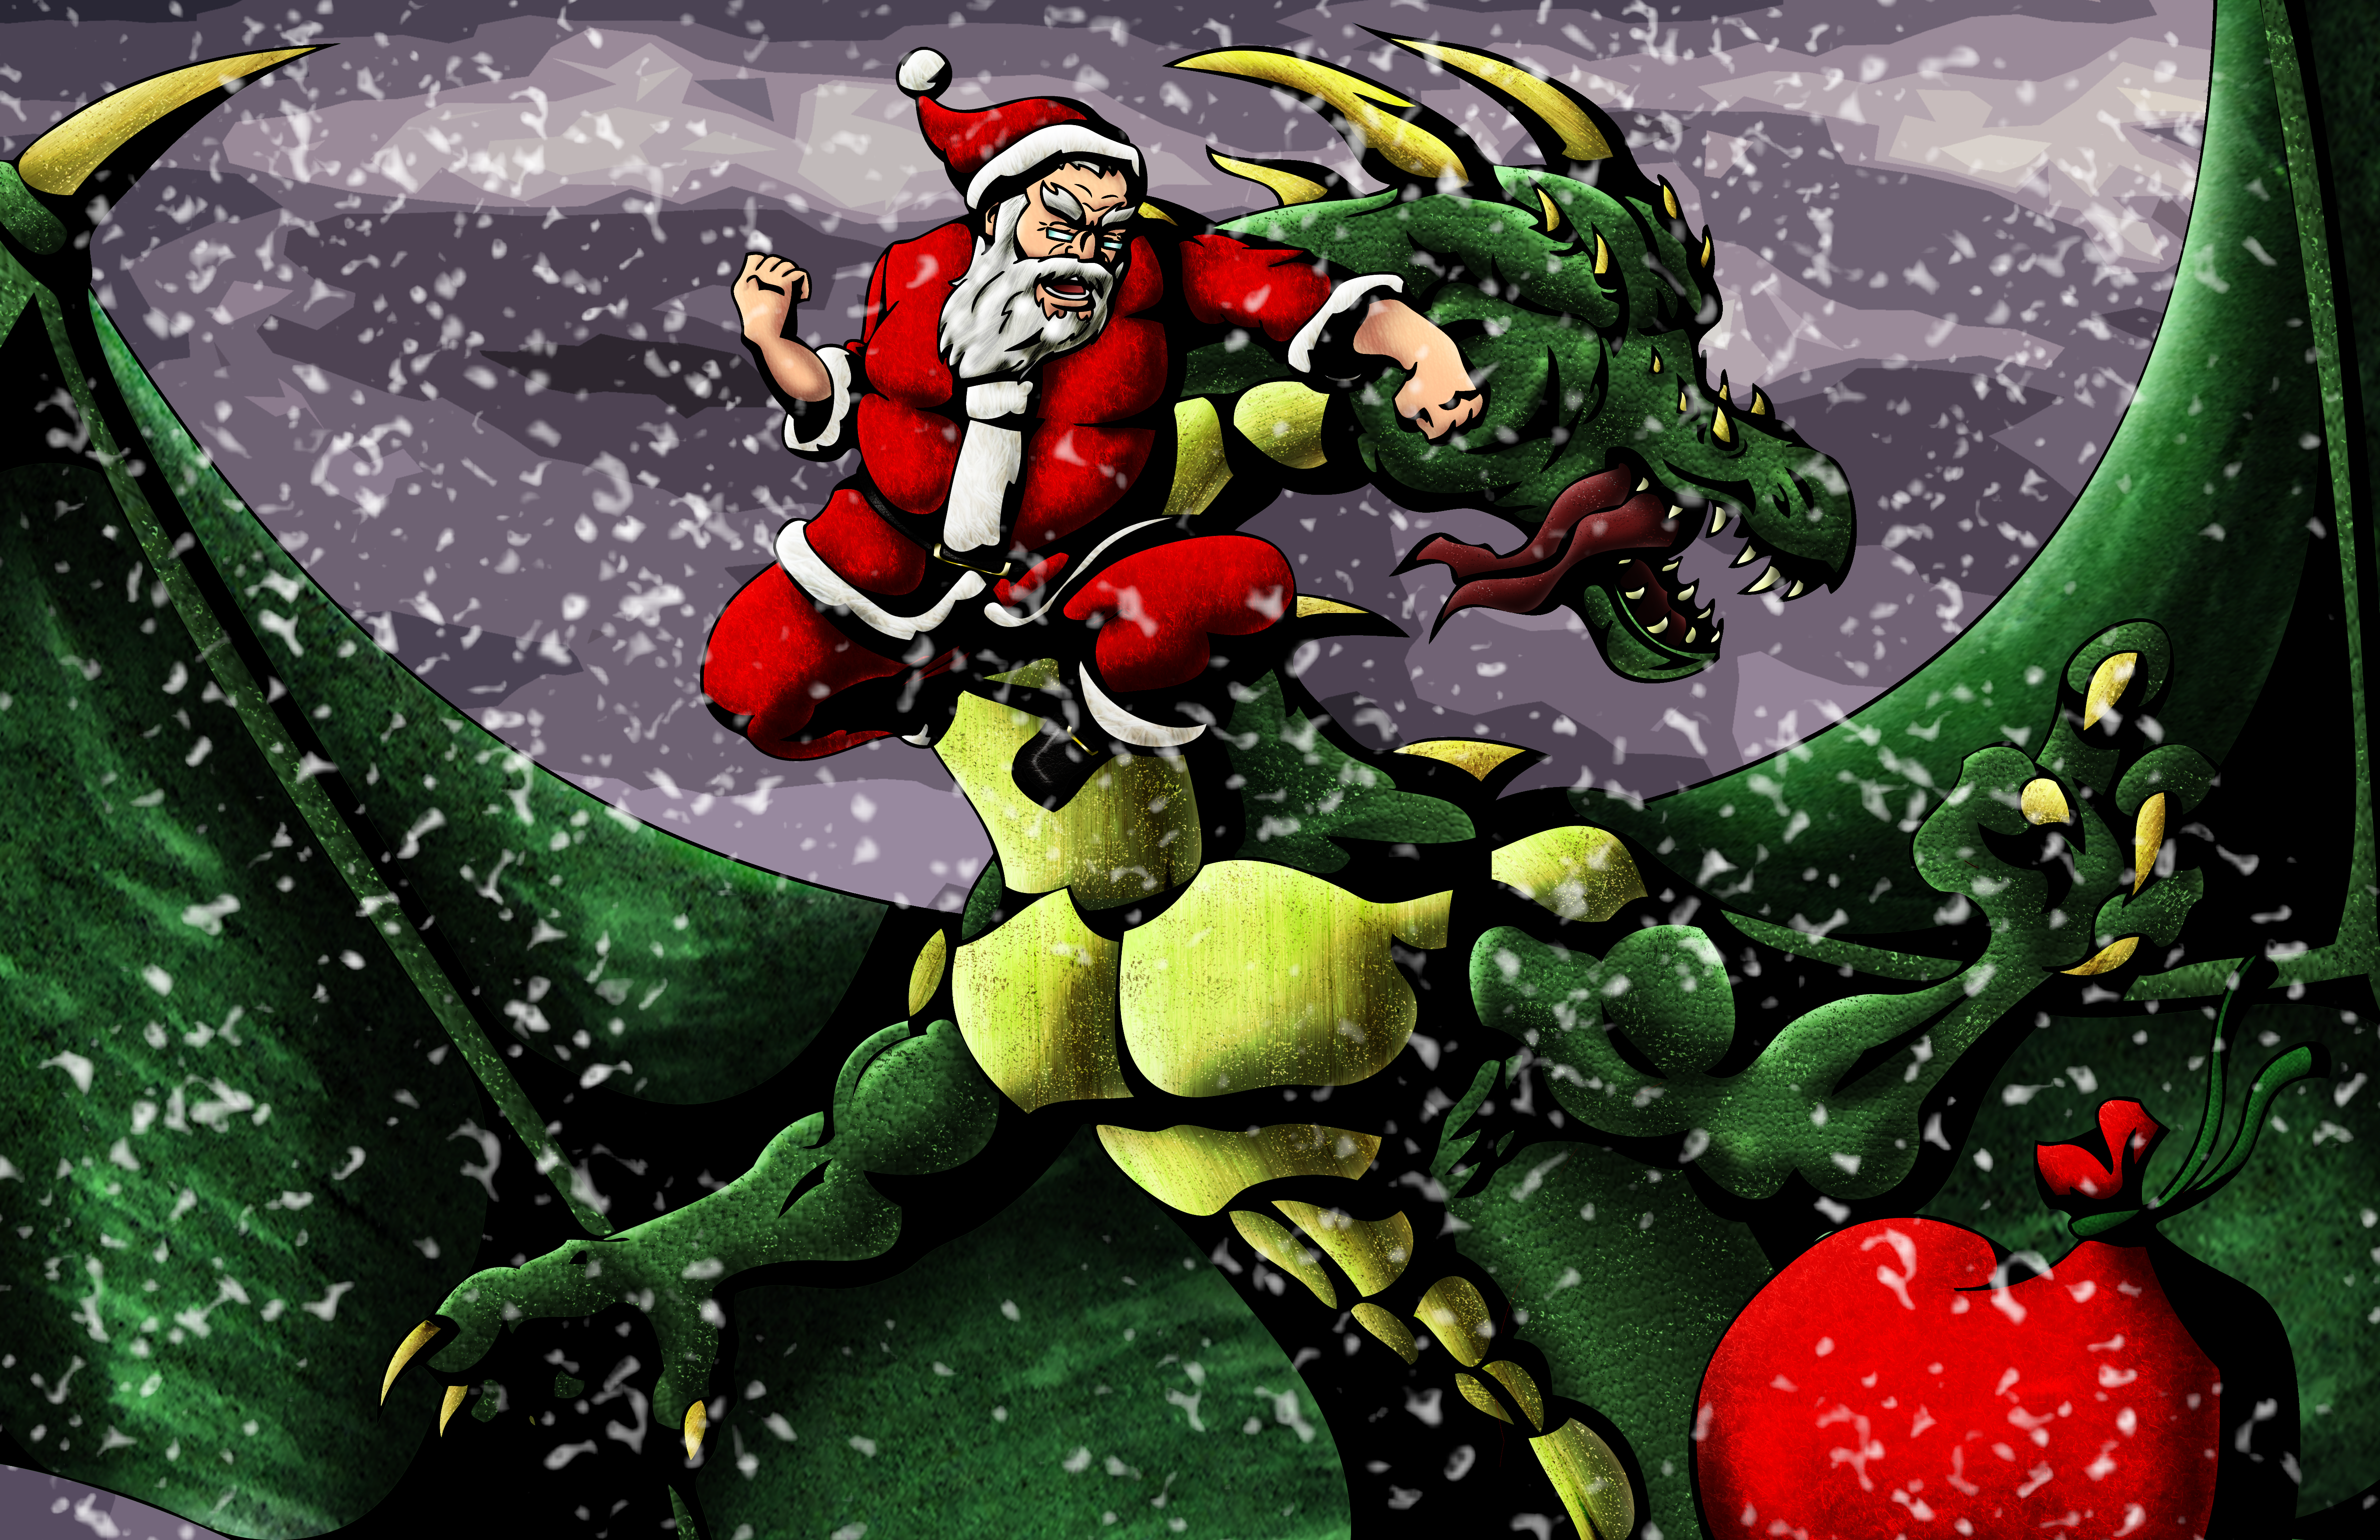 Epic Santa-Those Aren't For You!